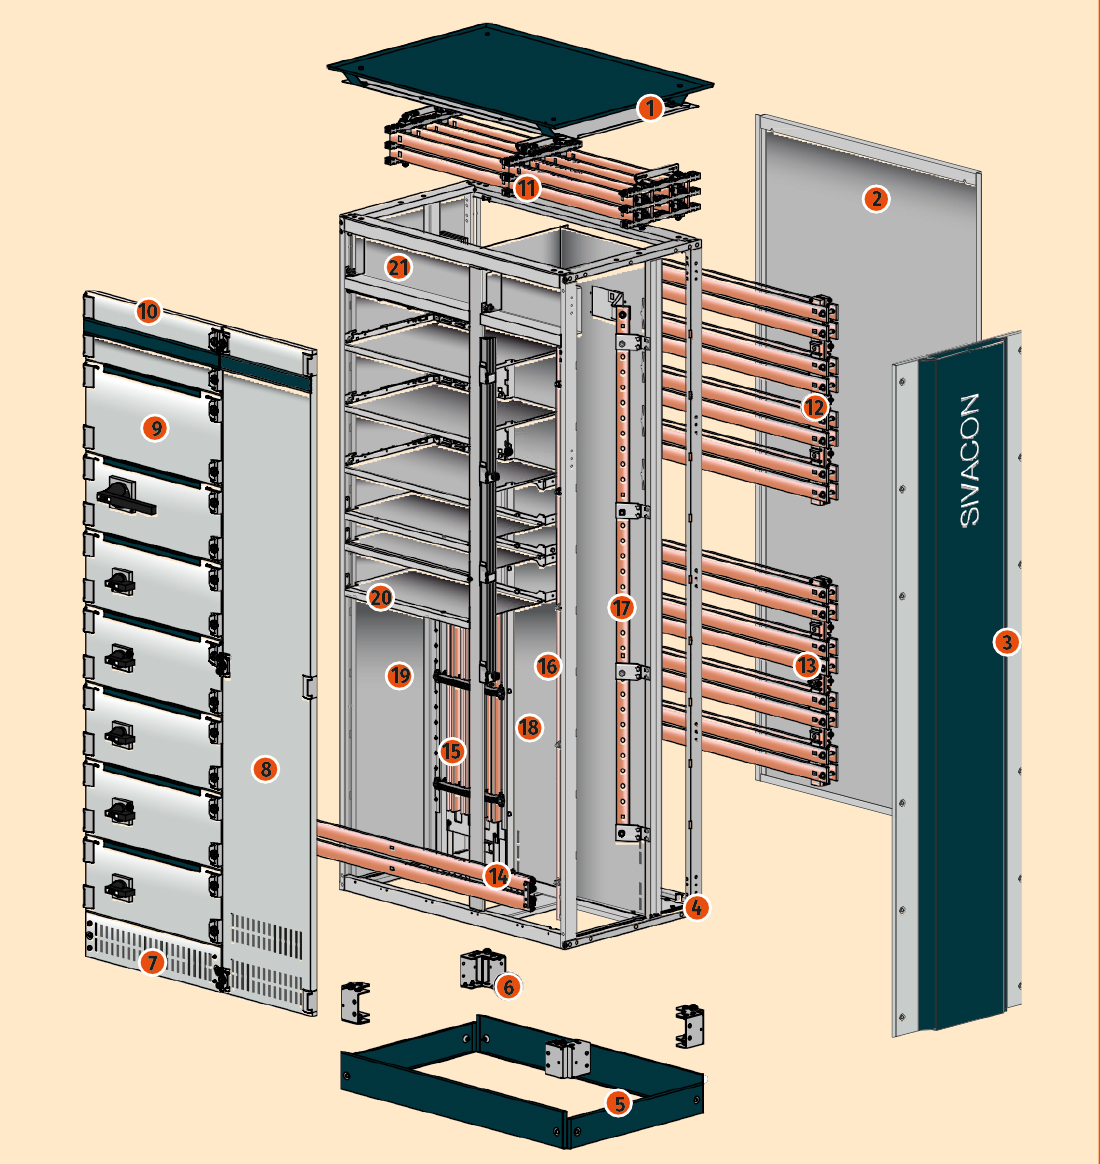 An Image Of The Logstrup Busbar assembly